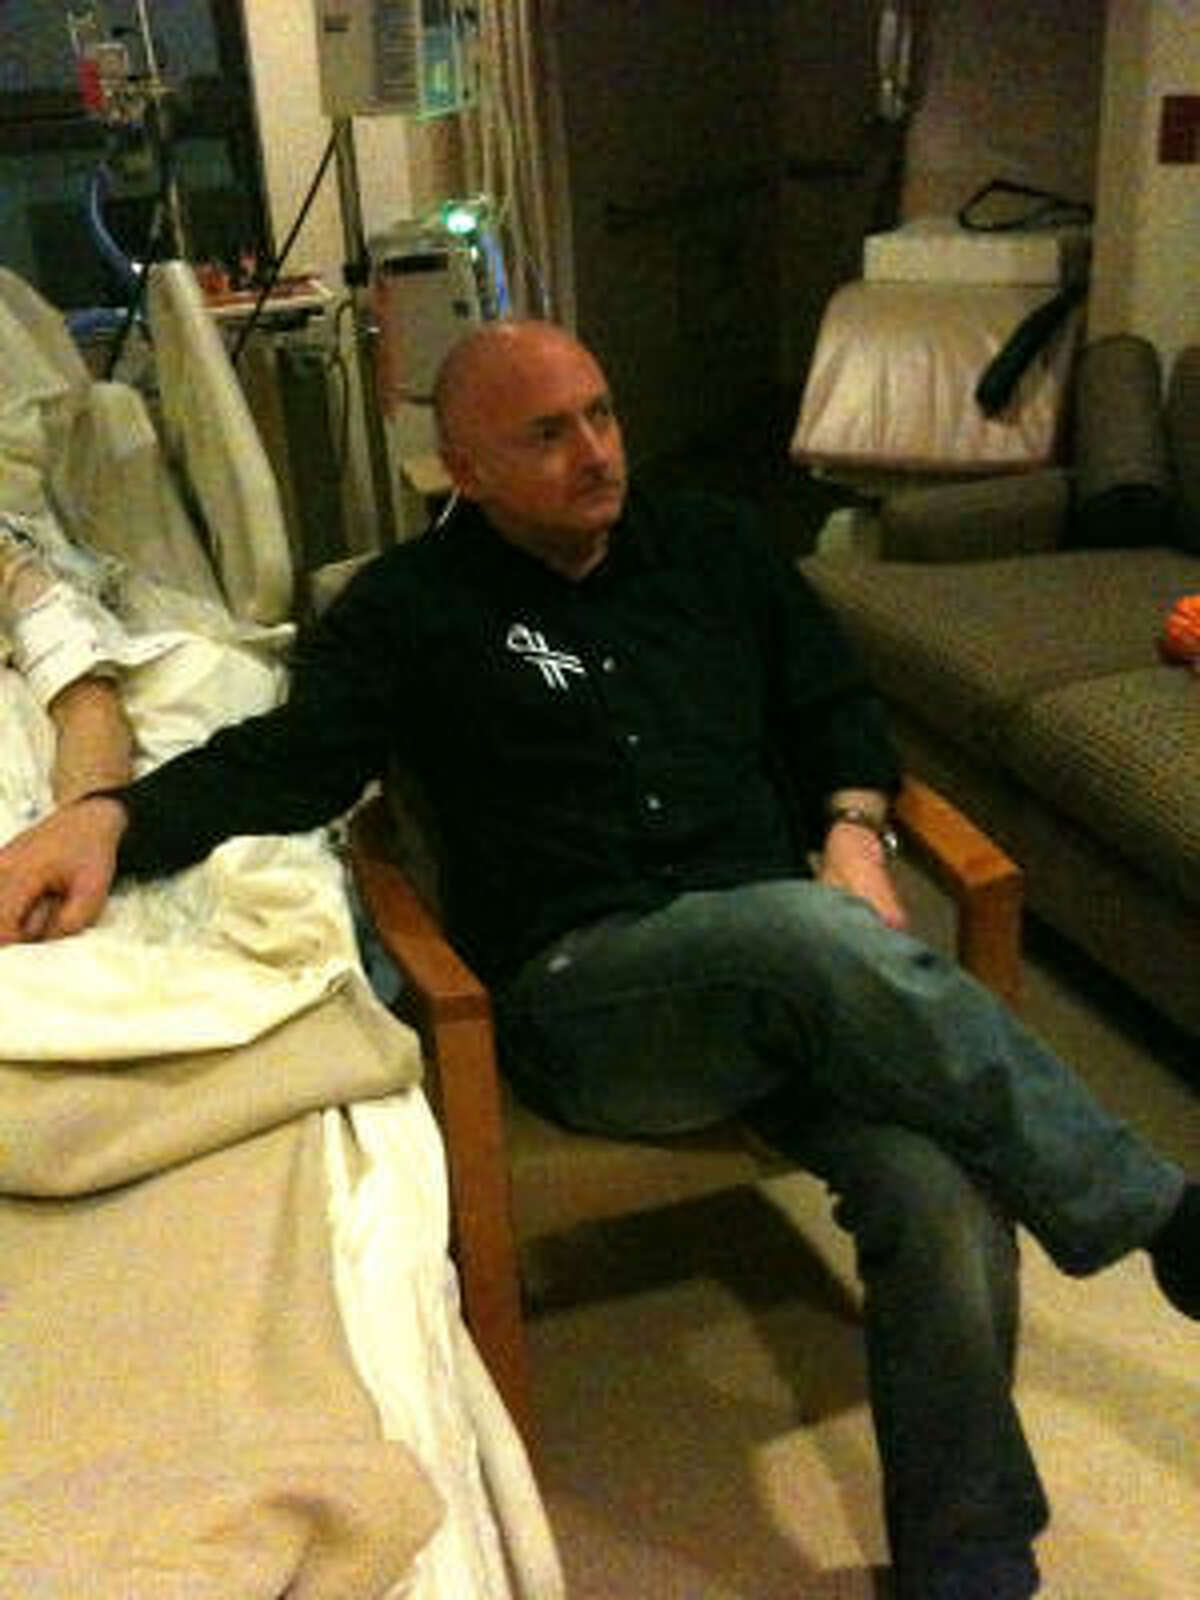 Mark Kelly watches the State of the Union in the hospital room of his wife, Rep. Gabrielle Giffords, in Houston.